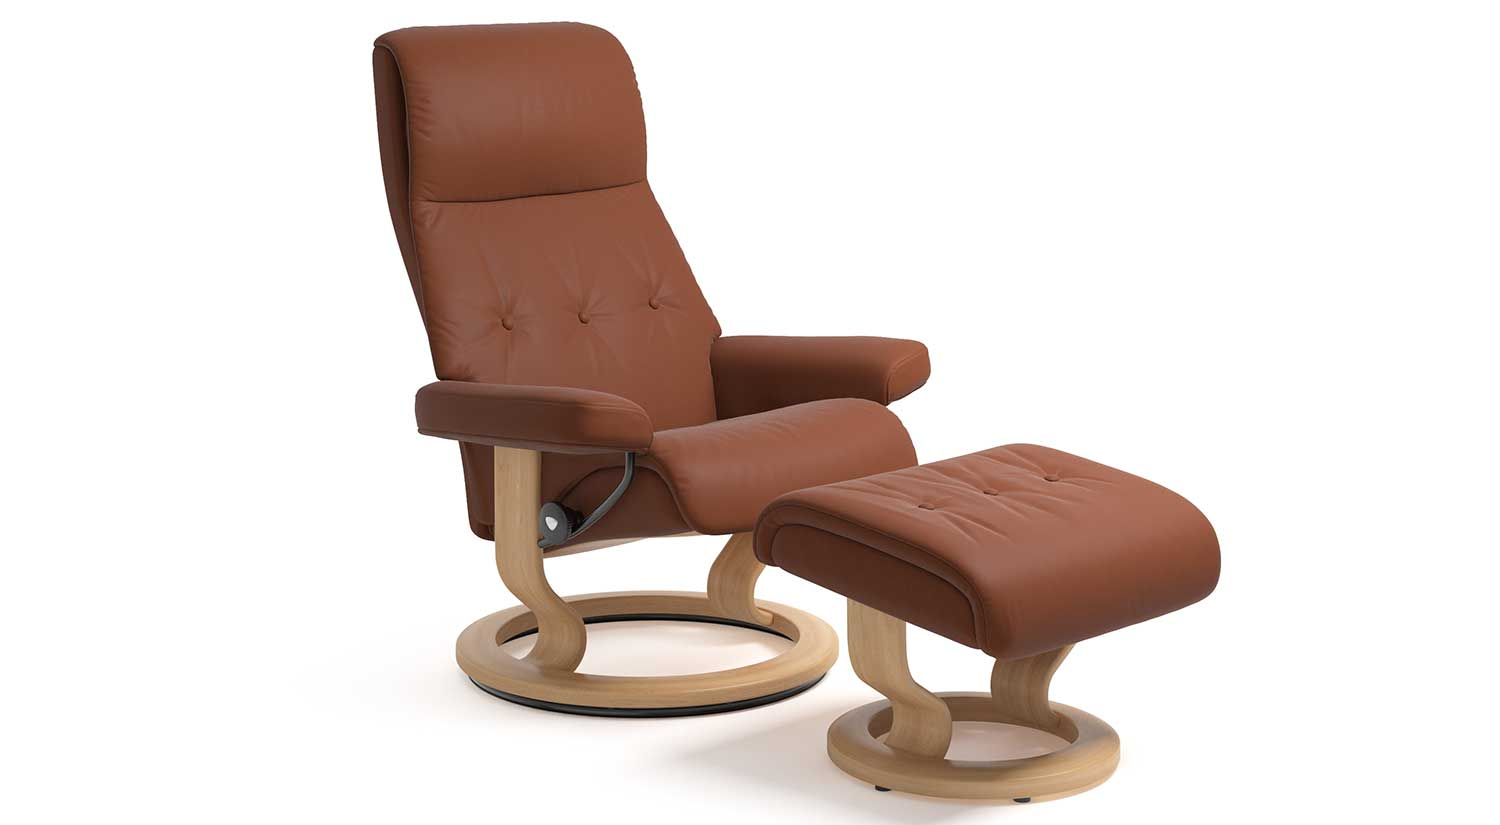 Sky Stressless Chair and Ottoman